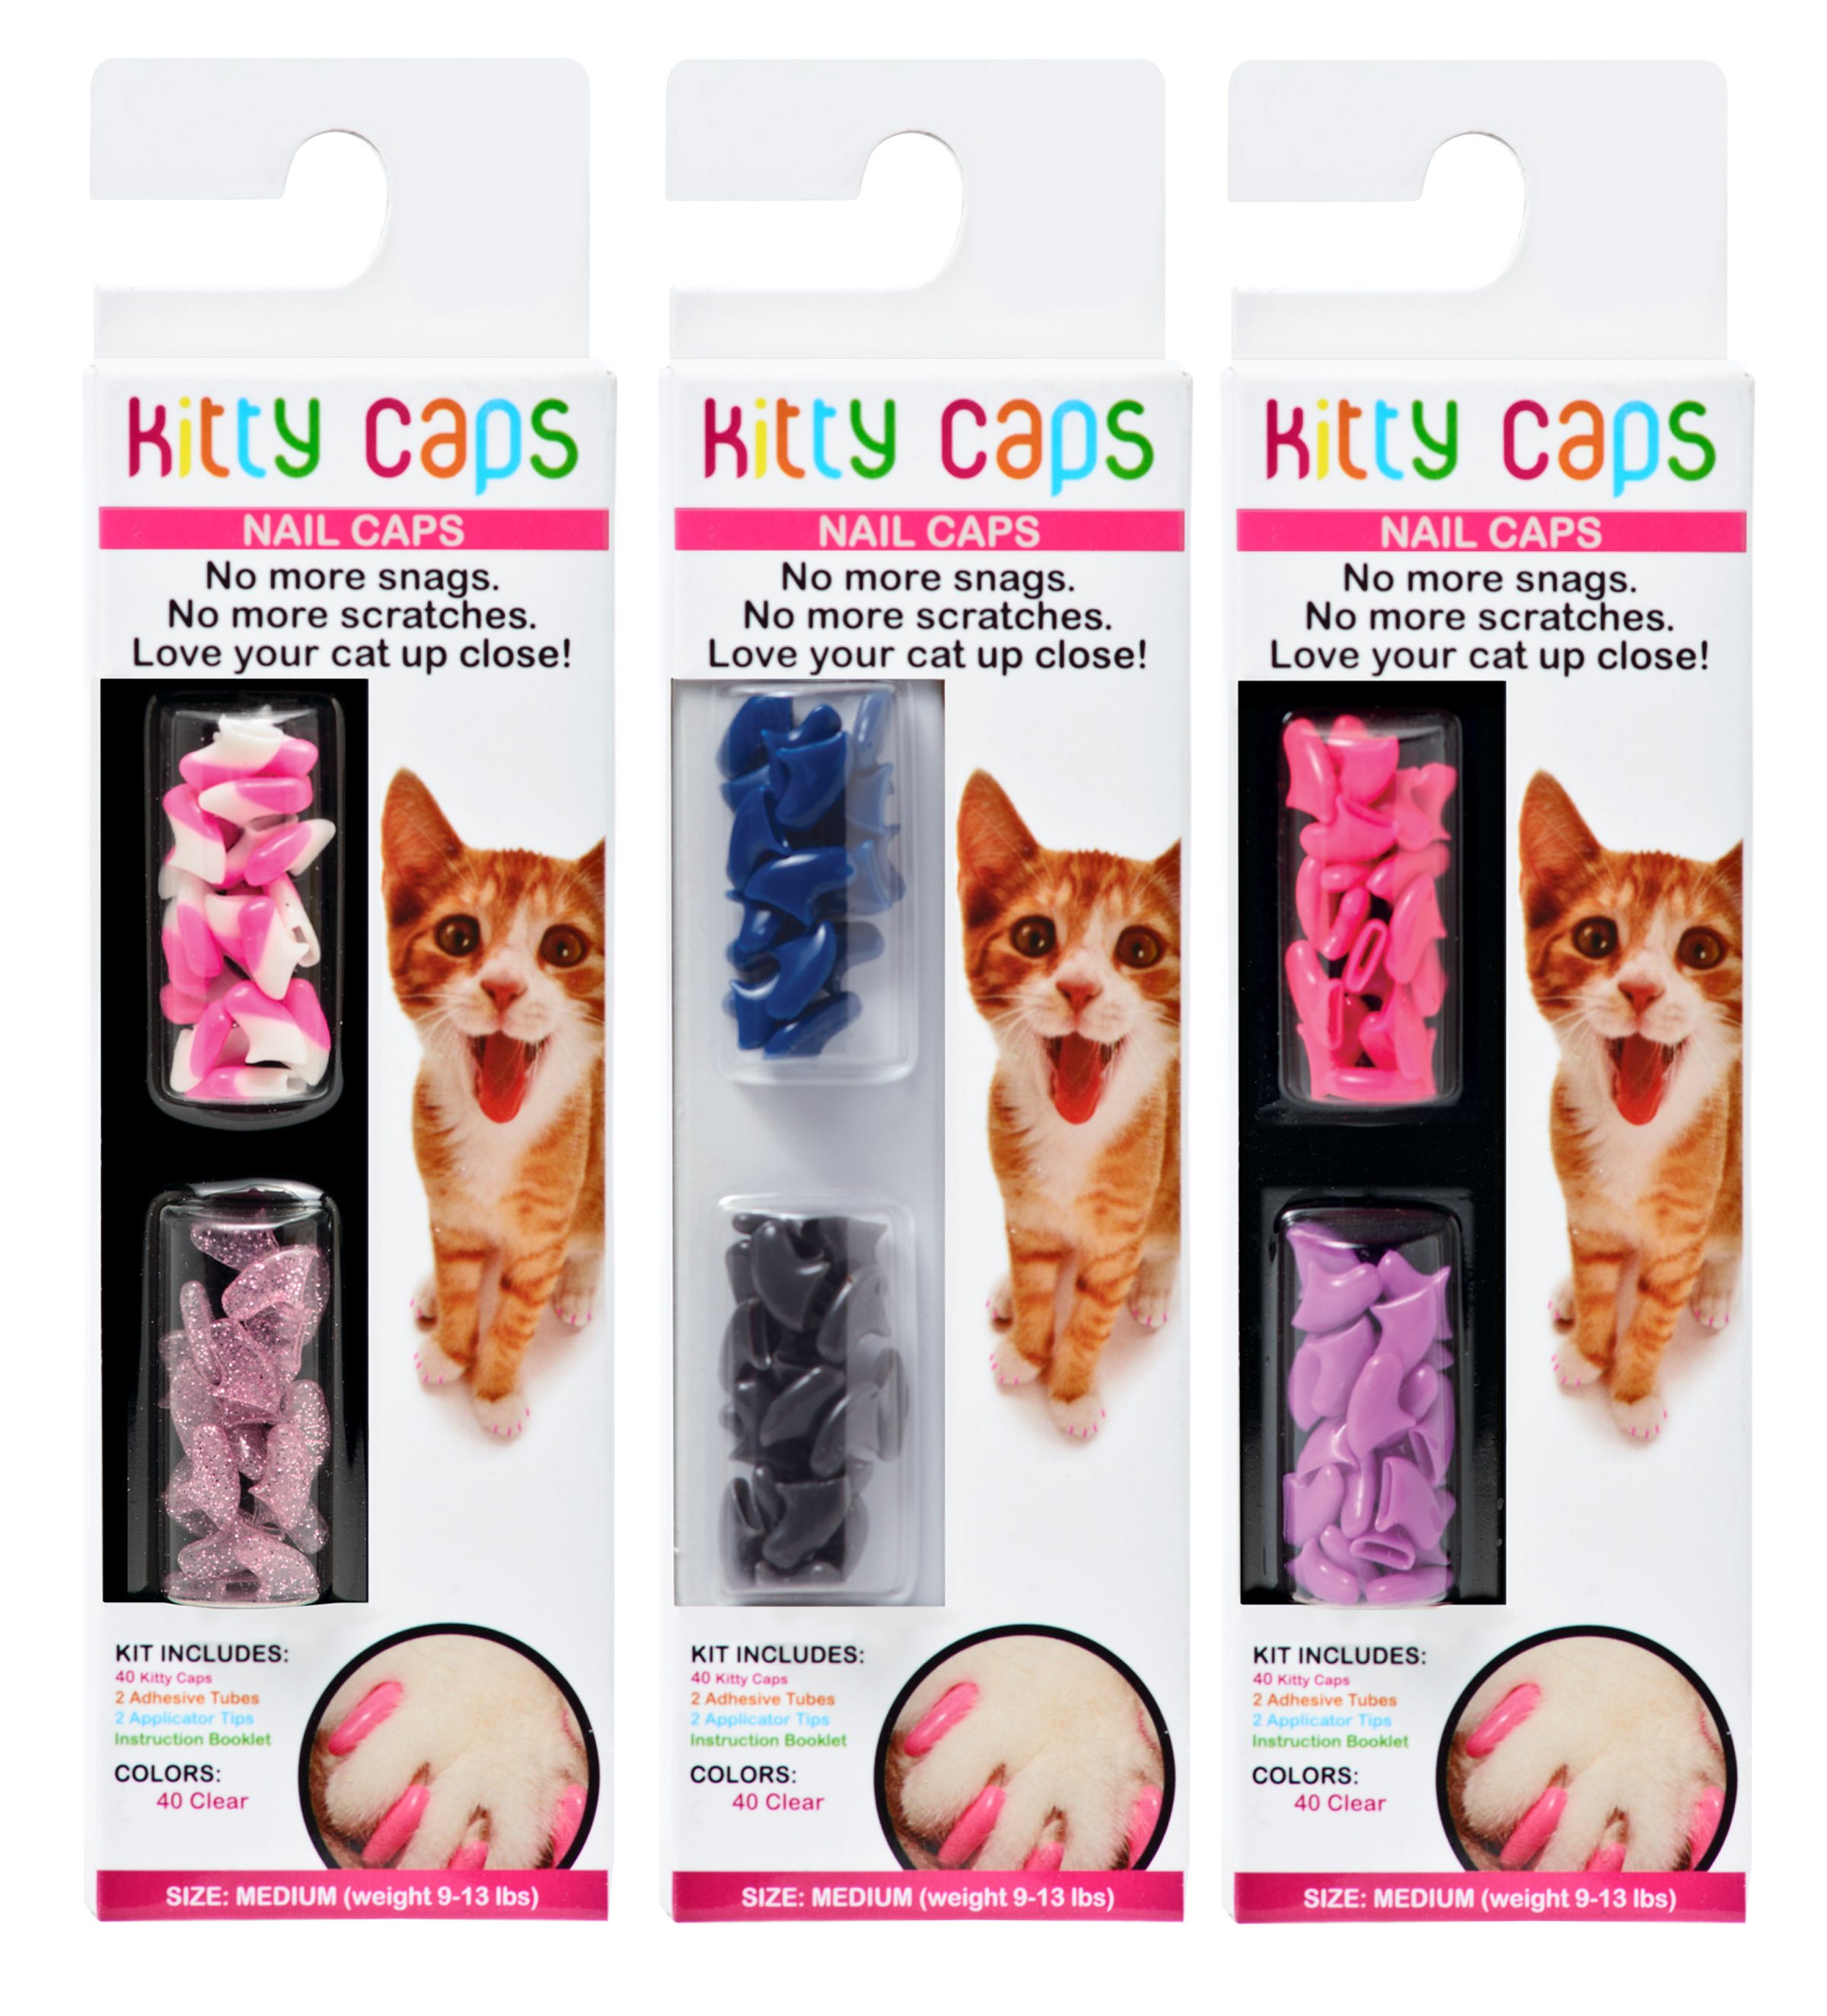 wholesale xsmall kitty caps colours food removal repellant video games Doggy caps Kitty caps colors extra small disney dog nail Small aurora plush disney phone Applicator tips ext spray kitty caps extra small colors of caps flops litter box ship to canada flopsie Telephone number for Kitty Caps how to remove kitty caps remove coulors.